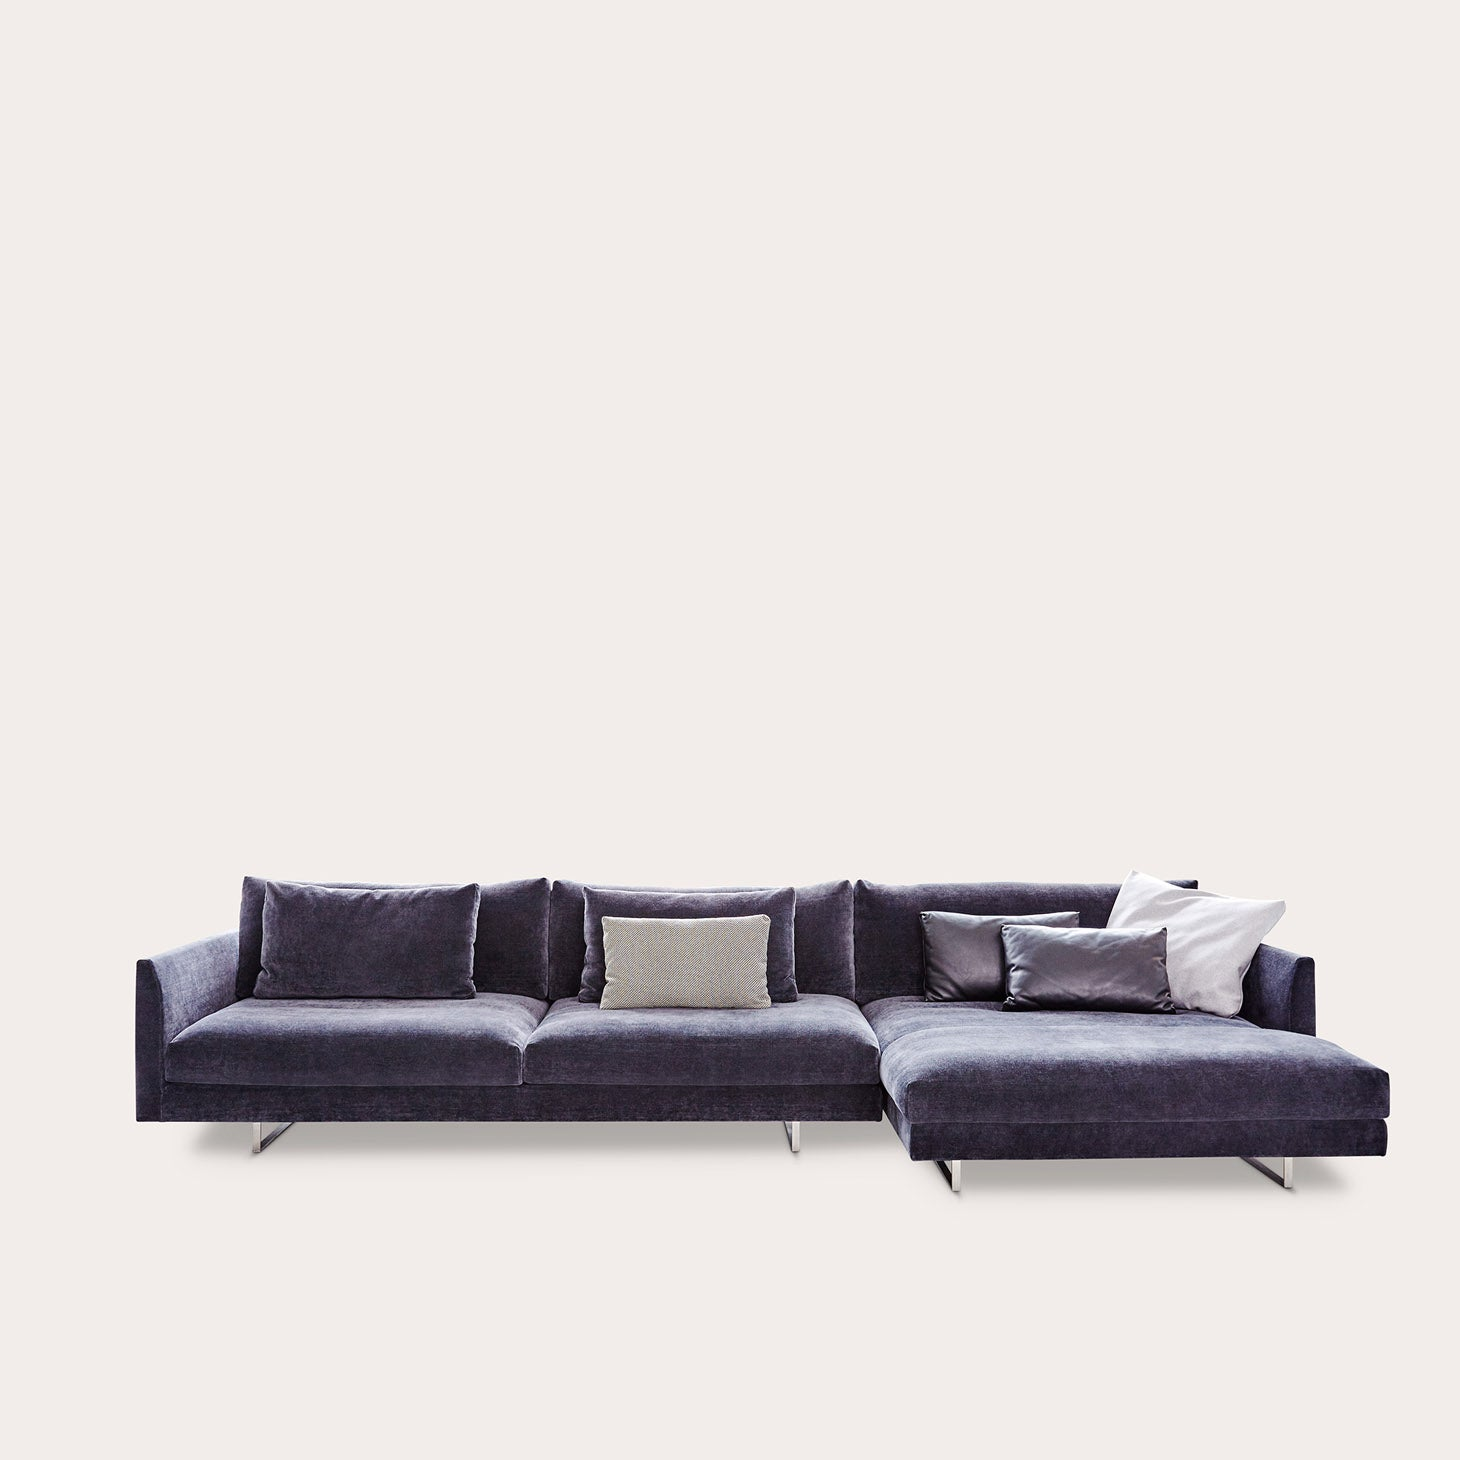 Axel XL Seating Gijs Papavoine Designer Furniture Sku: 134-240-10058